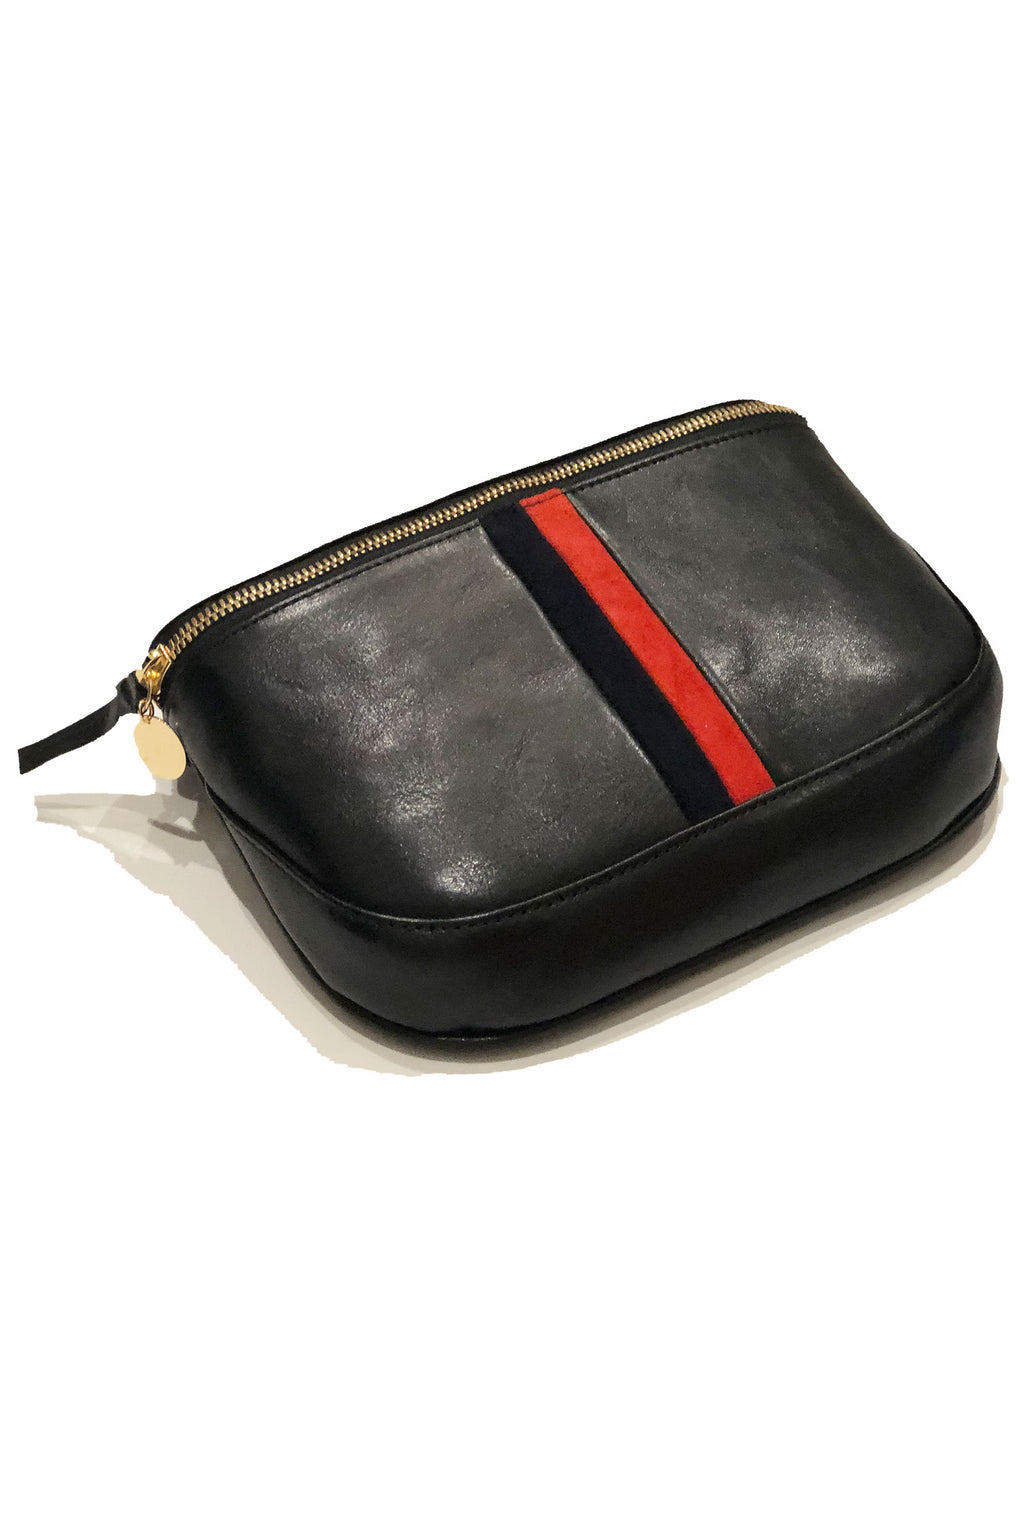 Clare Vivier Black Leather Red and Navy Stripe Fanny Pack